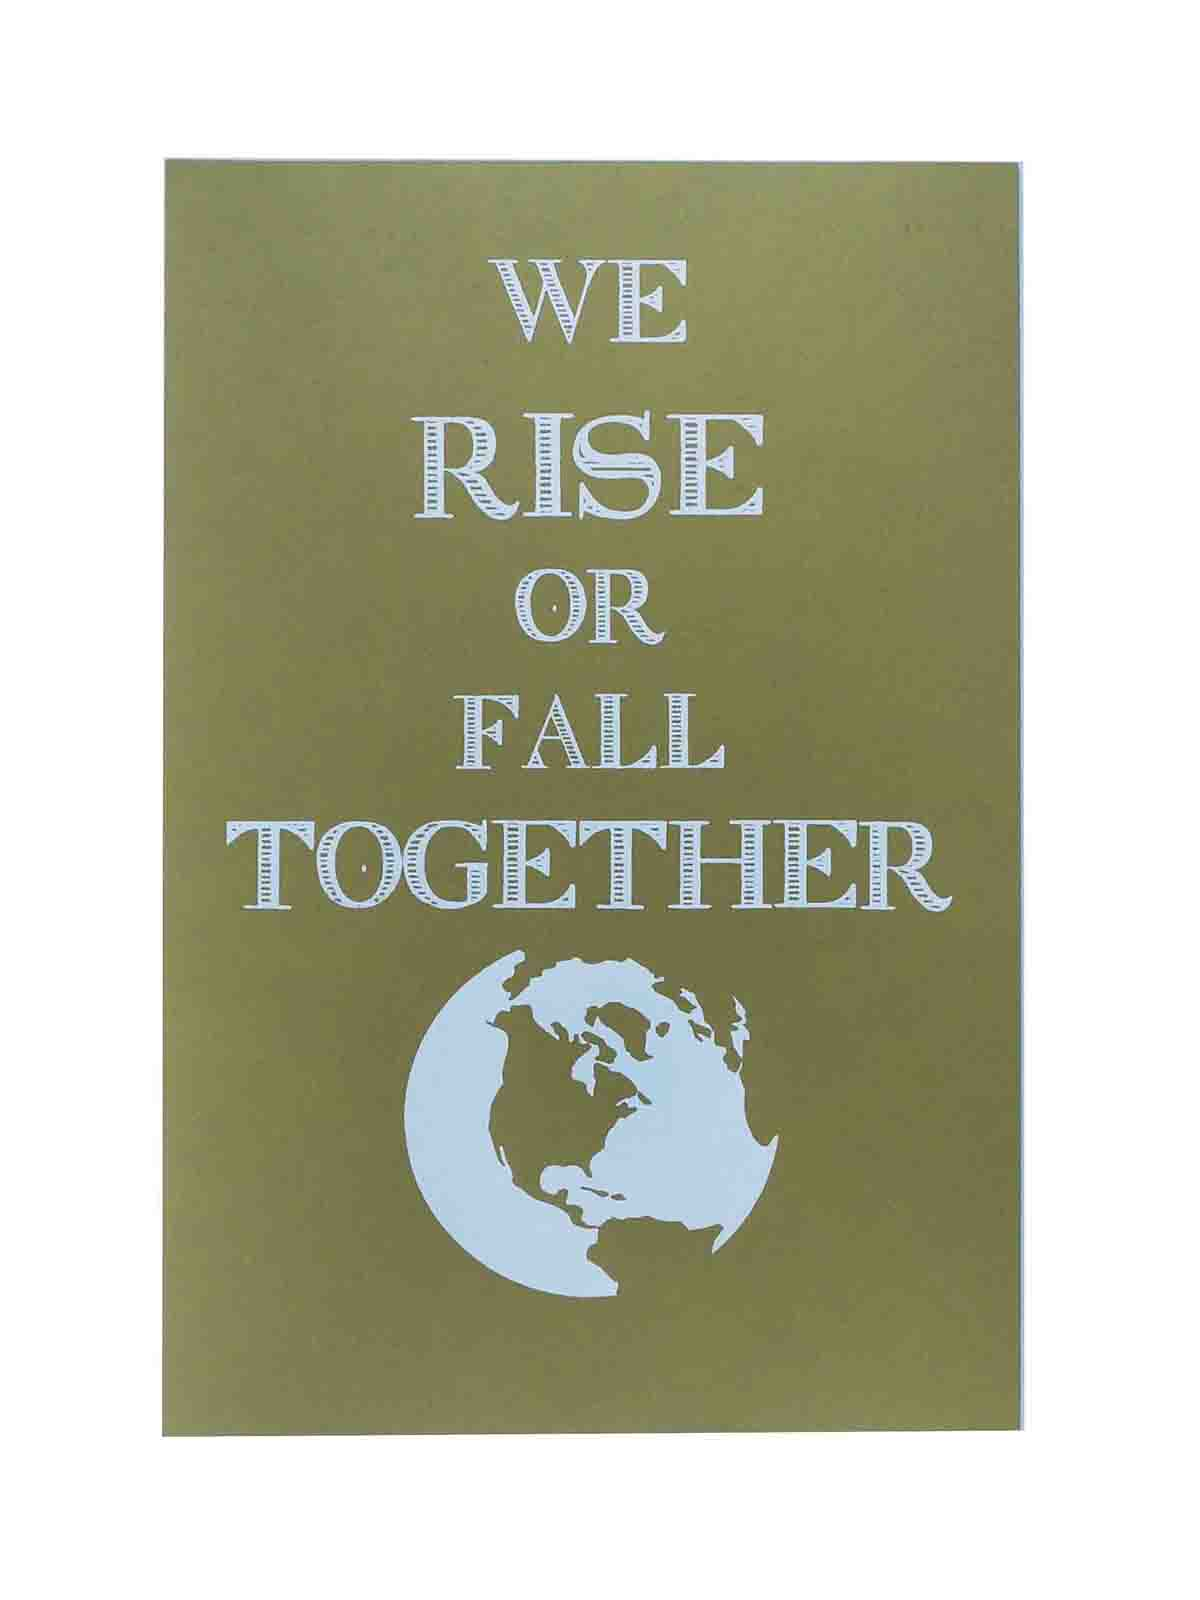 Ape_Bleakney_'We Rise Or Fall Together' Women's March Poster on Construction Factory Green, 12.5''x19''.jpg